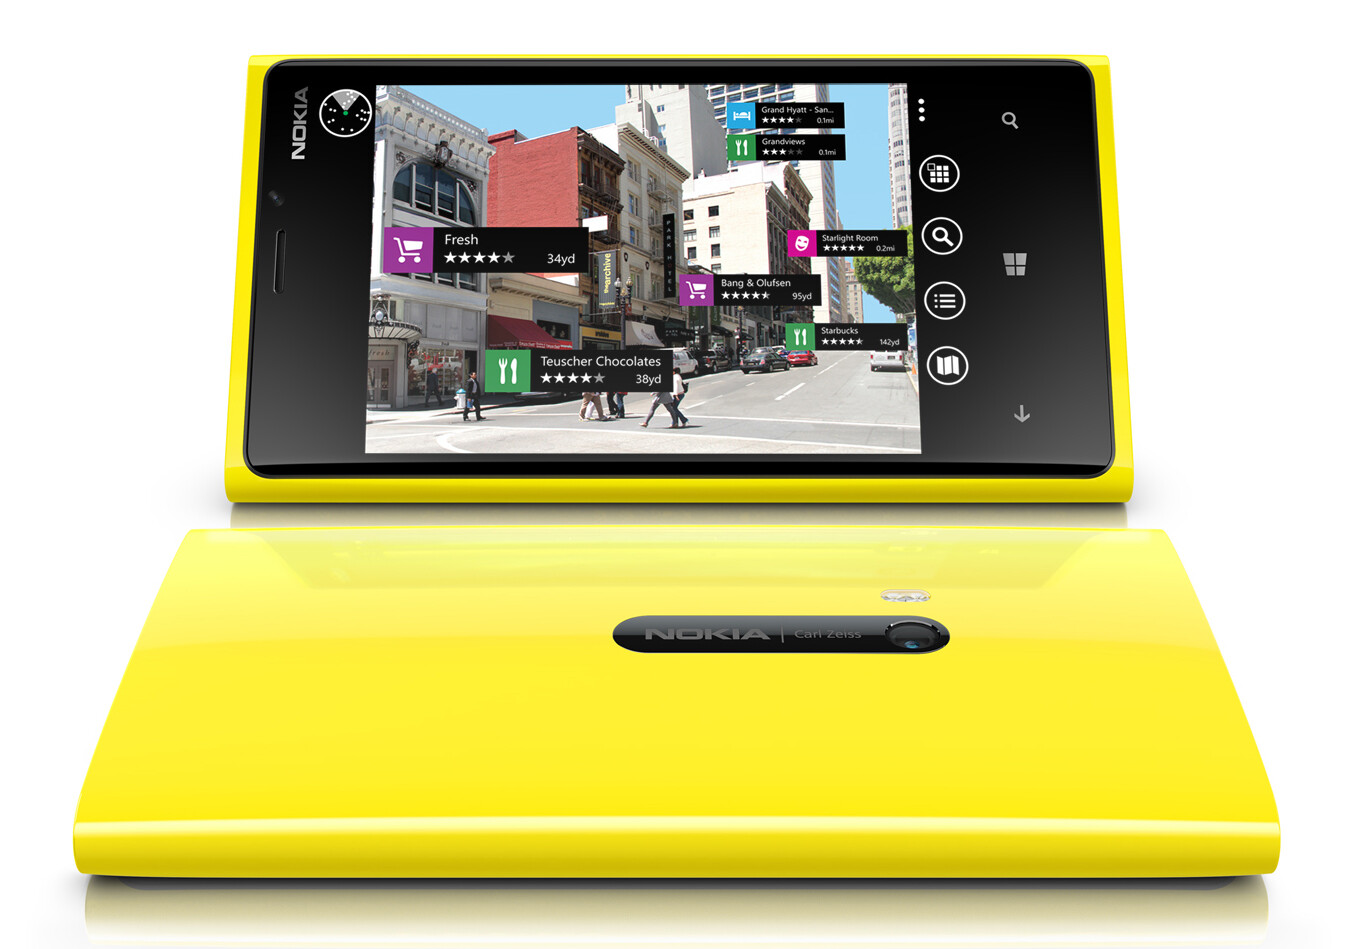 Schematic Nokia Lumia 920